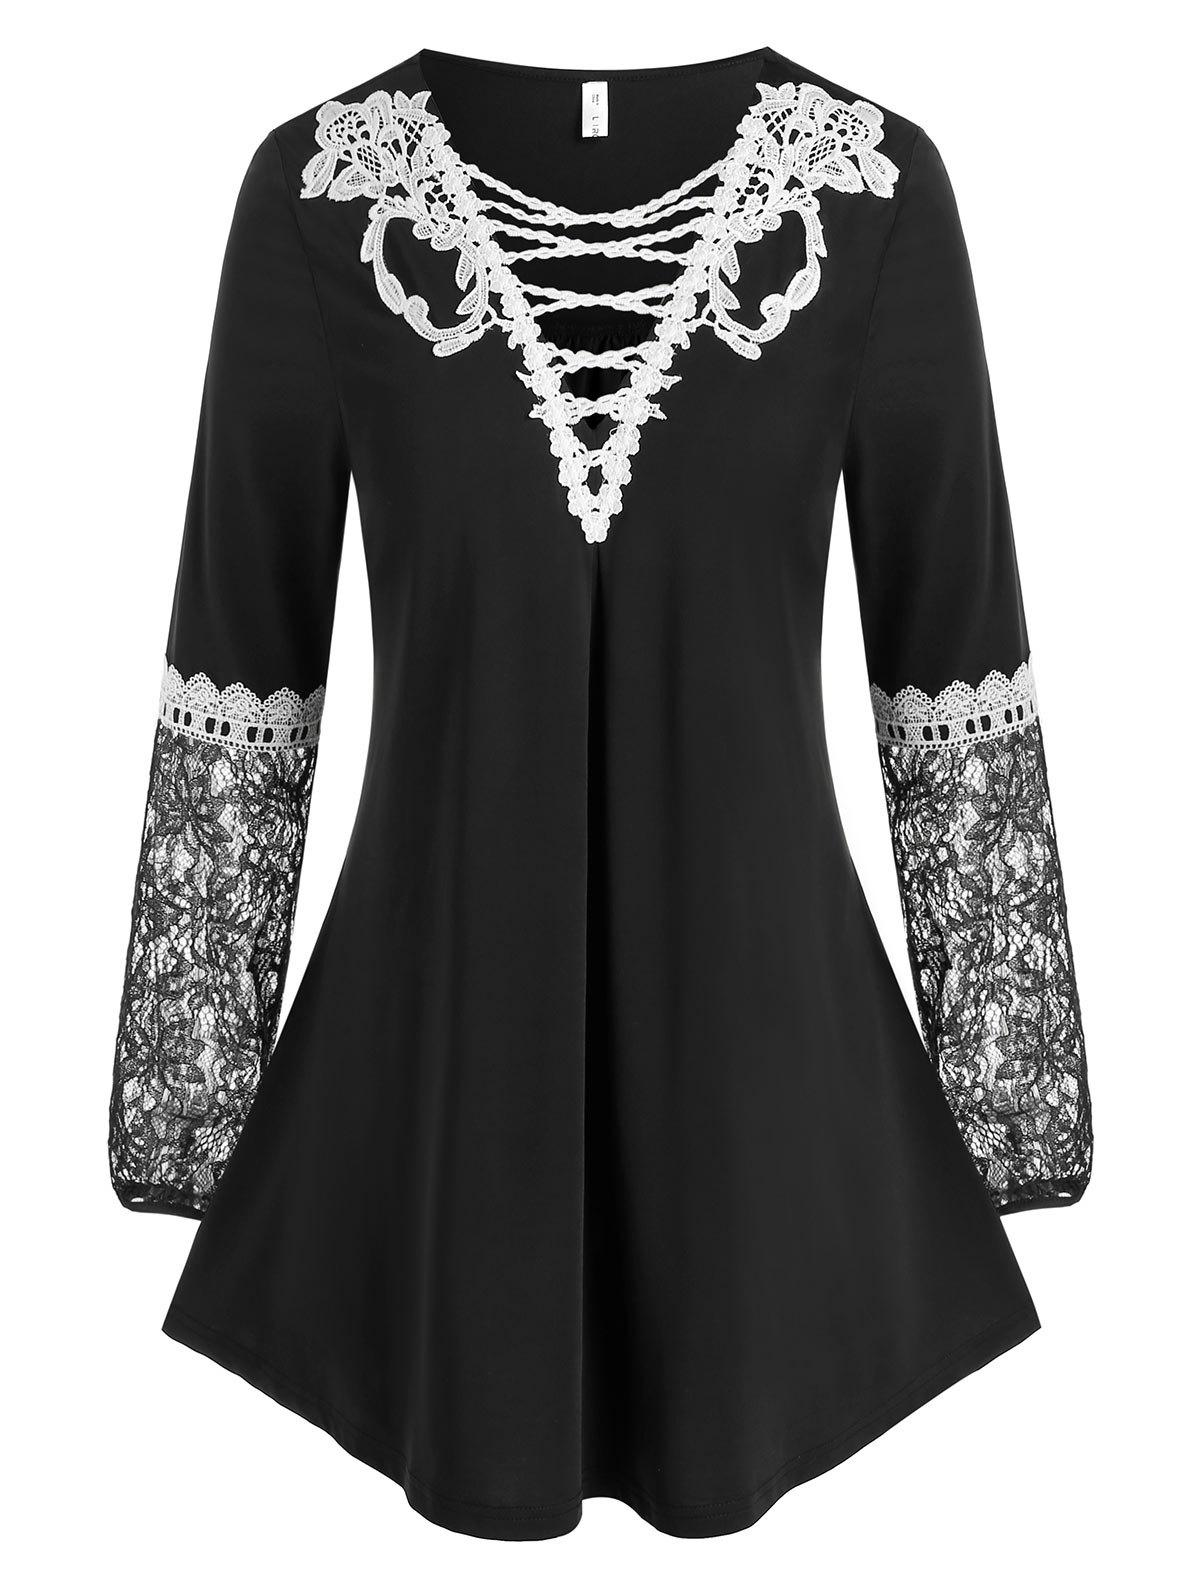 Plus Size Lace Insert Tunic Top - BLACK 1X